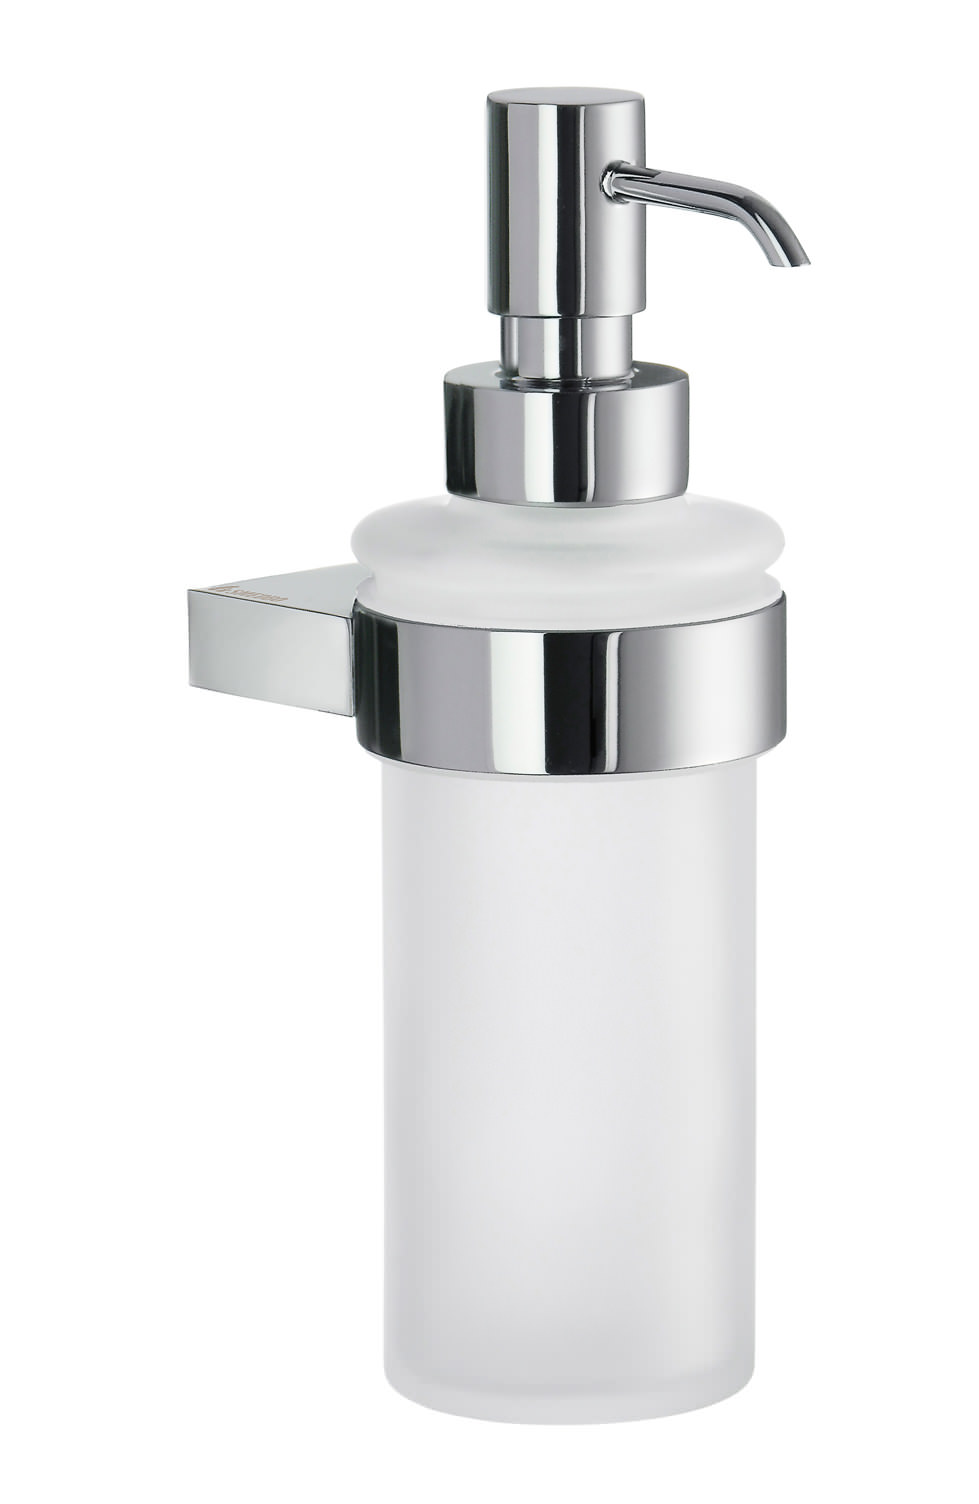 Smedbo Air Frosted Glass Soap Dispenser With Holder Ak369